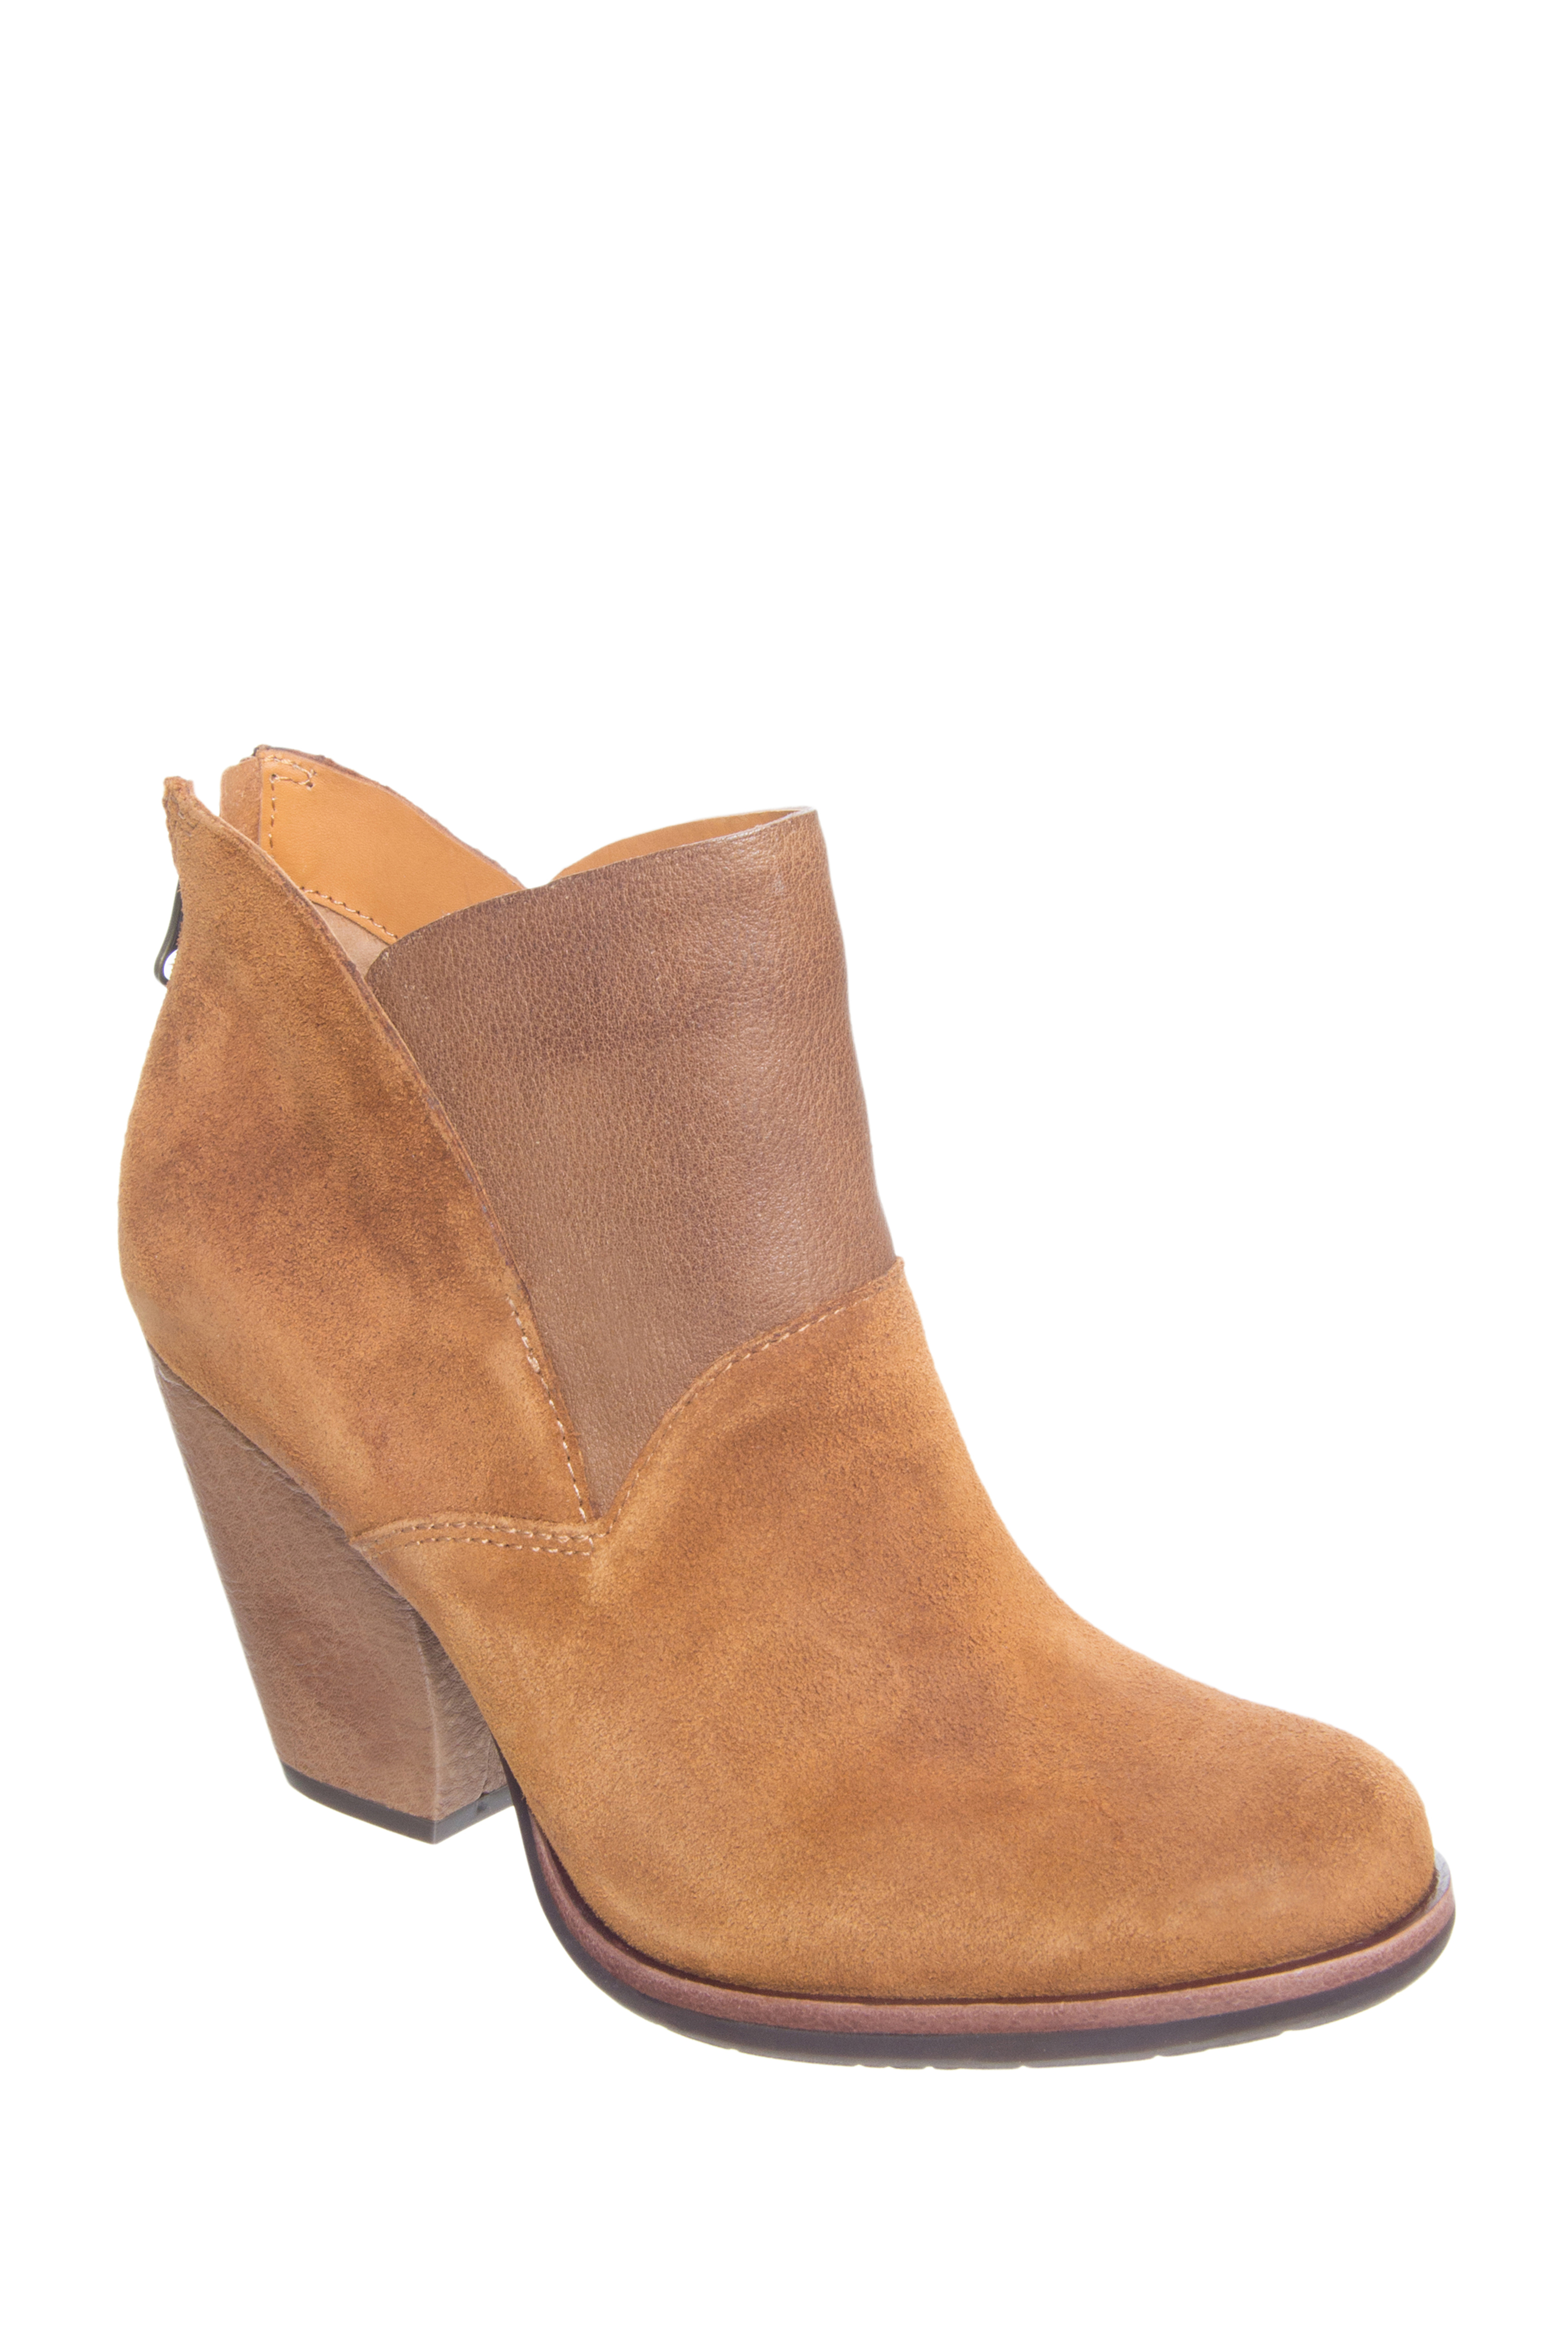 Kork-Ease Castaneda High Heel Booties - Tan Rust